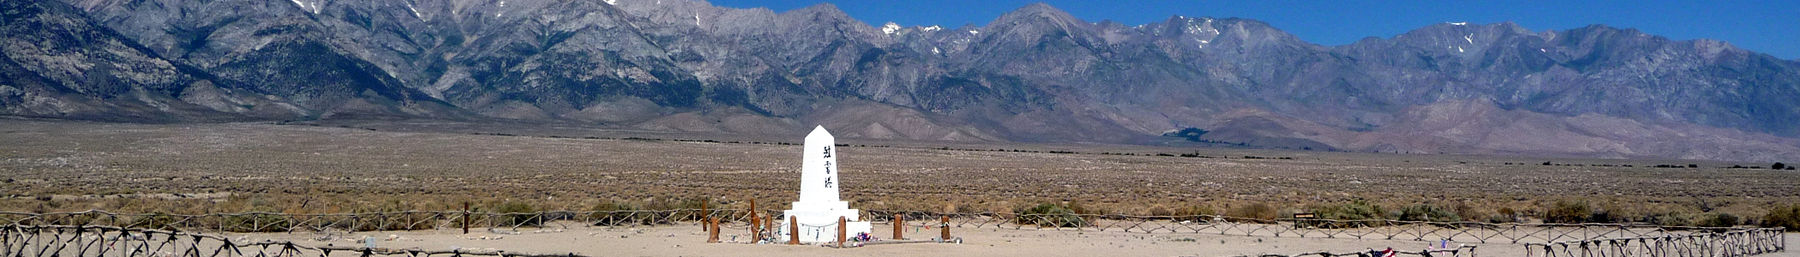 Japanese shrine in the Manzanar cemetery.